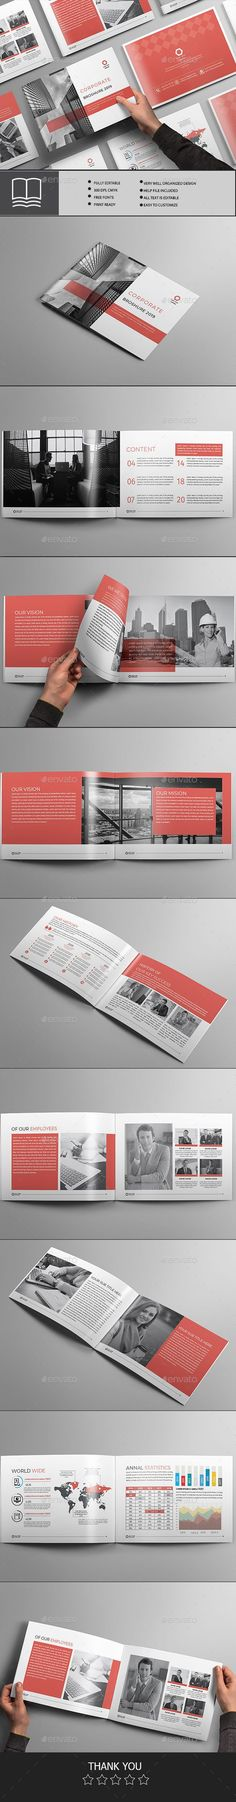 Company Profile Corporate Profile, Corporate Business, Business Brochure, Corporate Identity, Company Profile Template, Company Profile Design, Teacher Brochure, Board Game Design, Travel Brochure Template